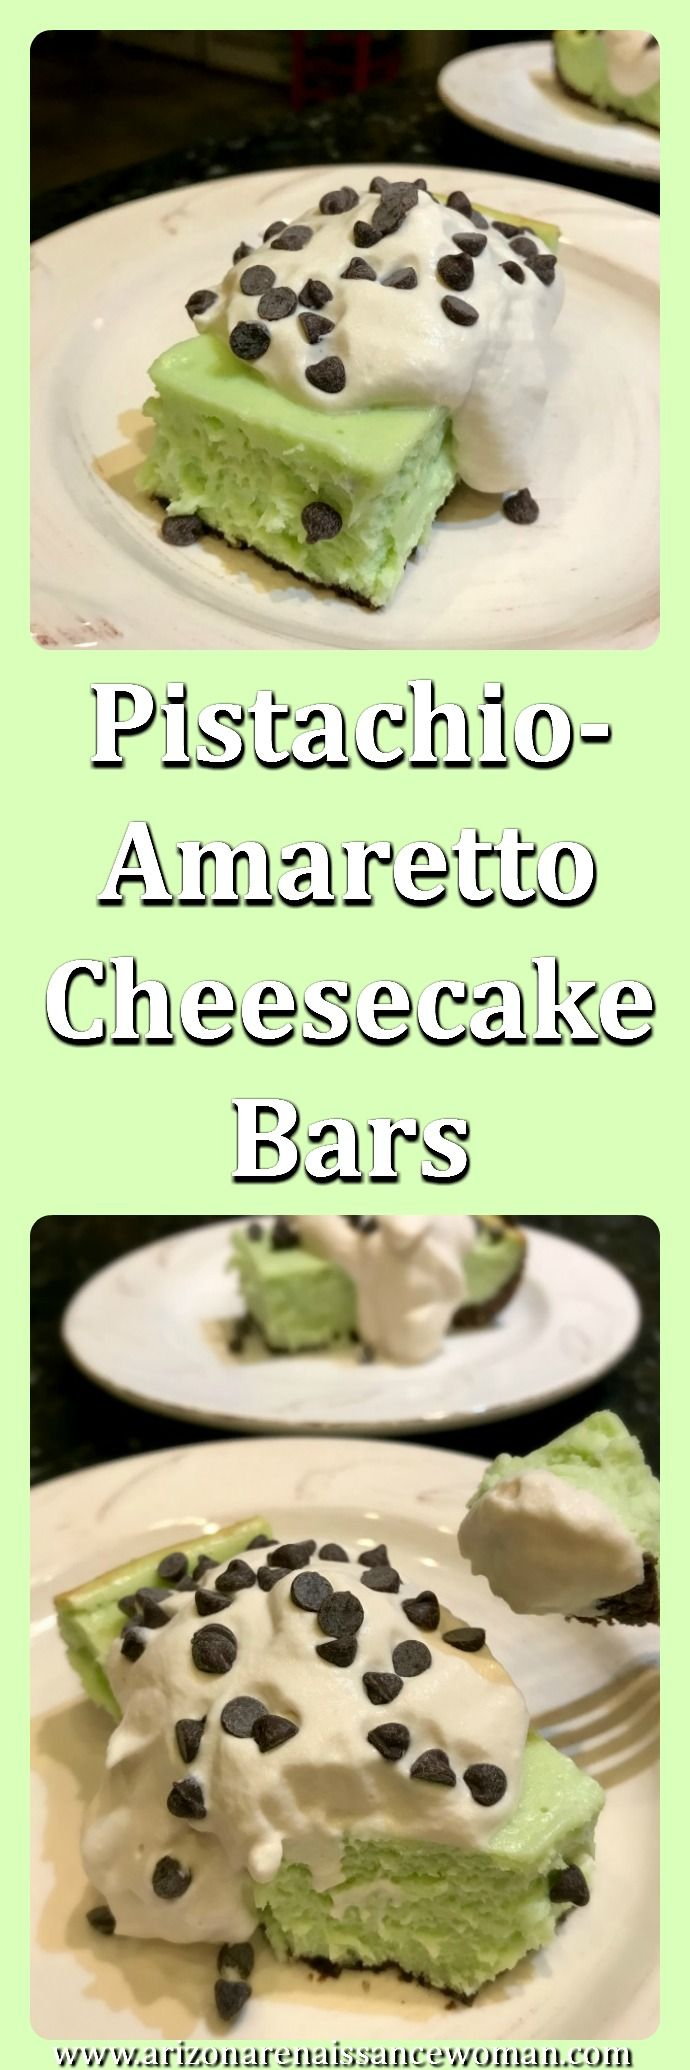 Pistachio Amaretto Cheesecake Bars - Try these delicious, easy-to-cut bars with the delicious flavors of cheesecake, pistachio pudding, and amaretto!